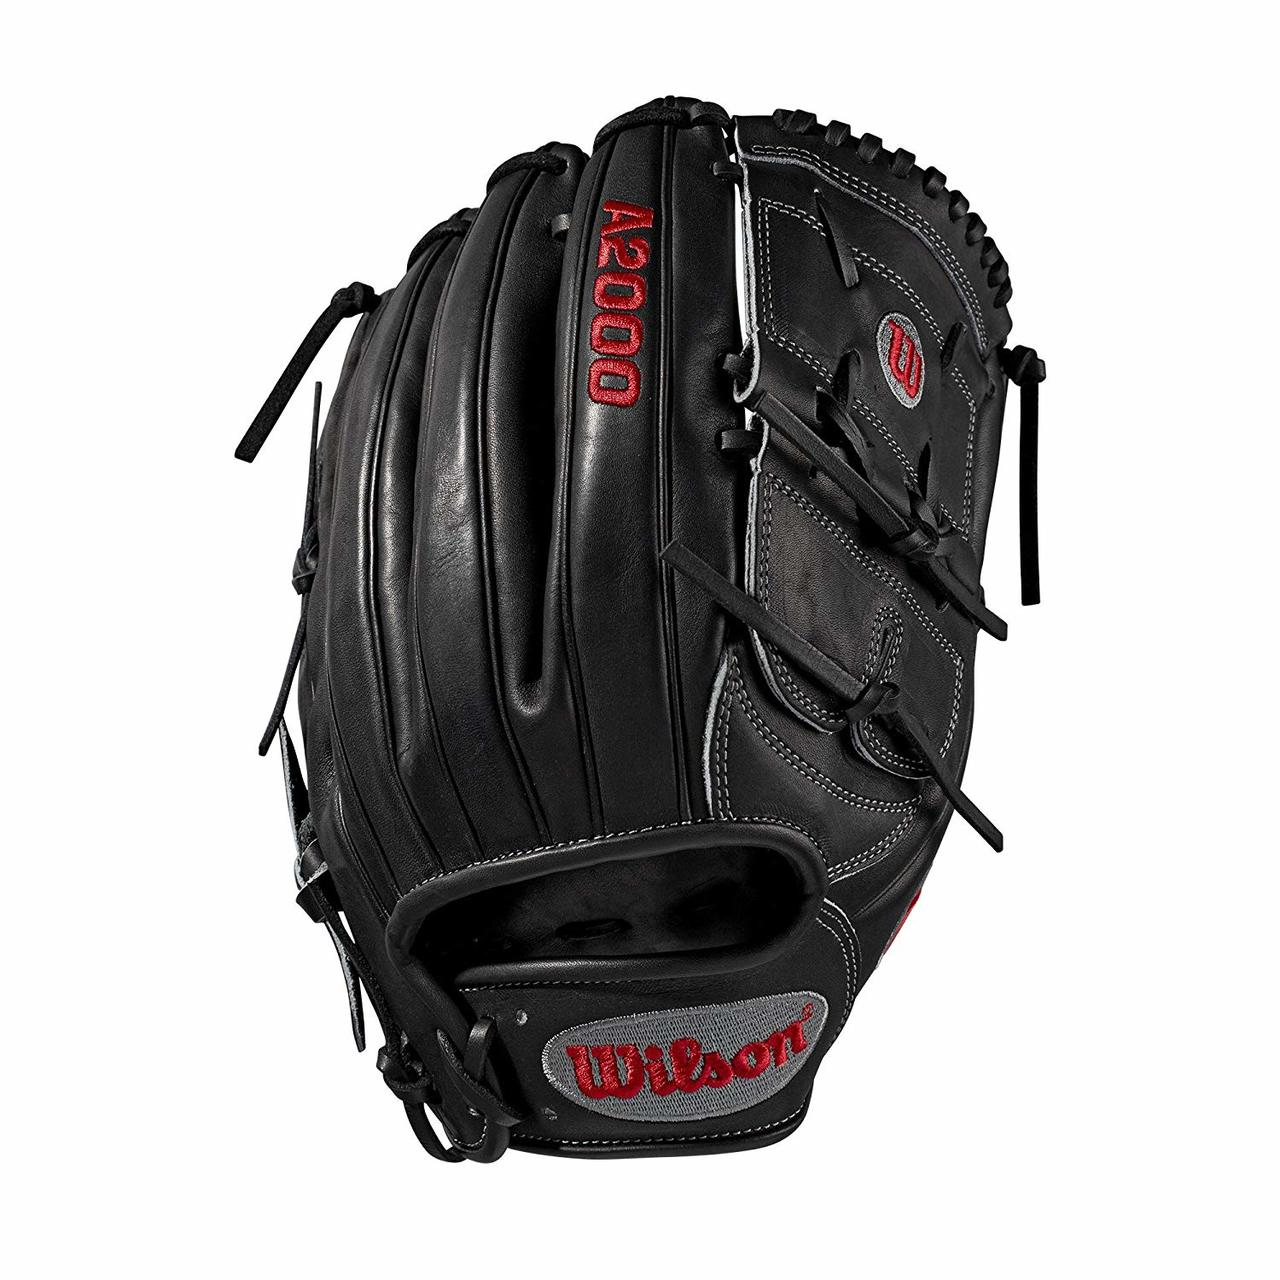 wilson-a2000-12-5-baseball-glove-2019-right-hand-throw WTA20RB19125-RightHandThrow Wilson 887768701987 12 inch pitchers glove Pitcher WTA20RB19B125 Two-piece web Black Pro Stock